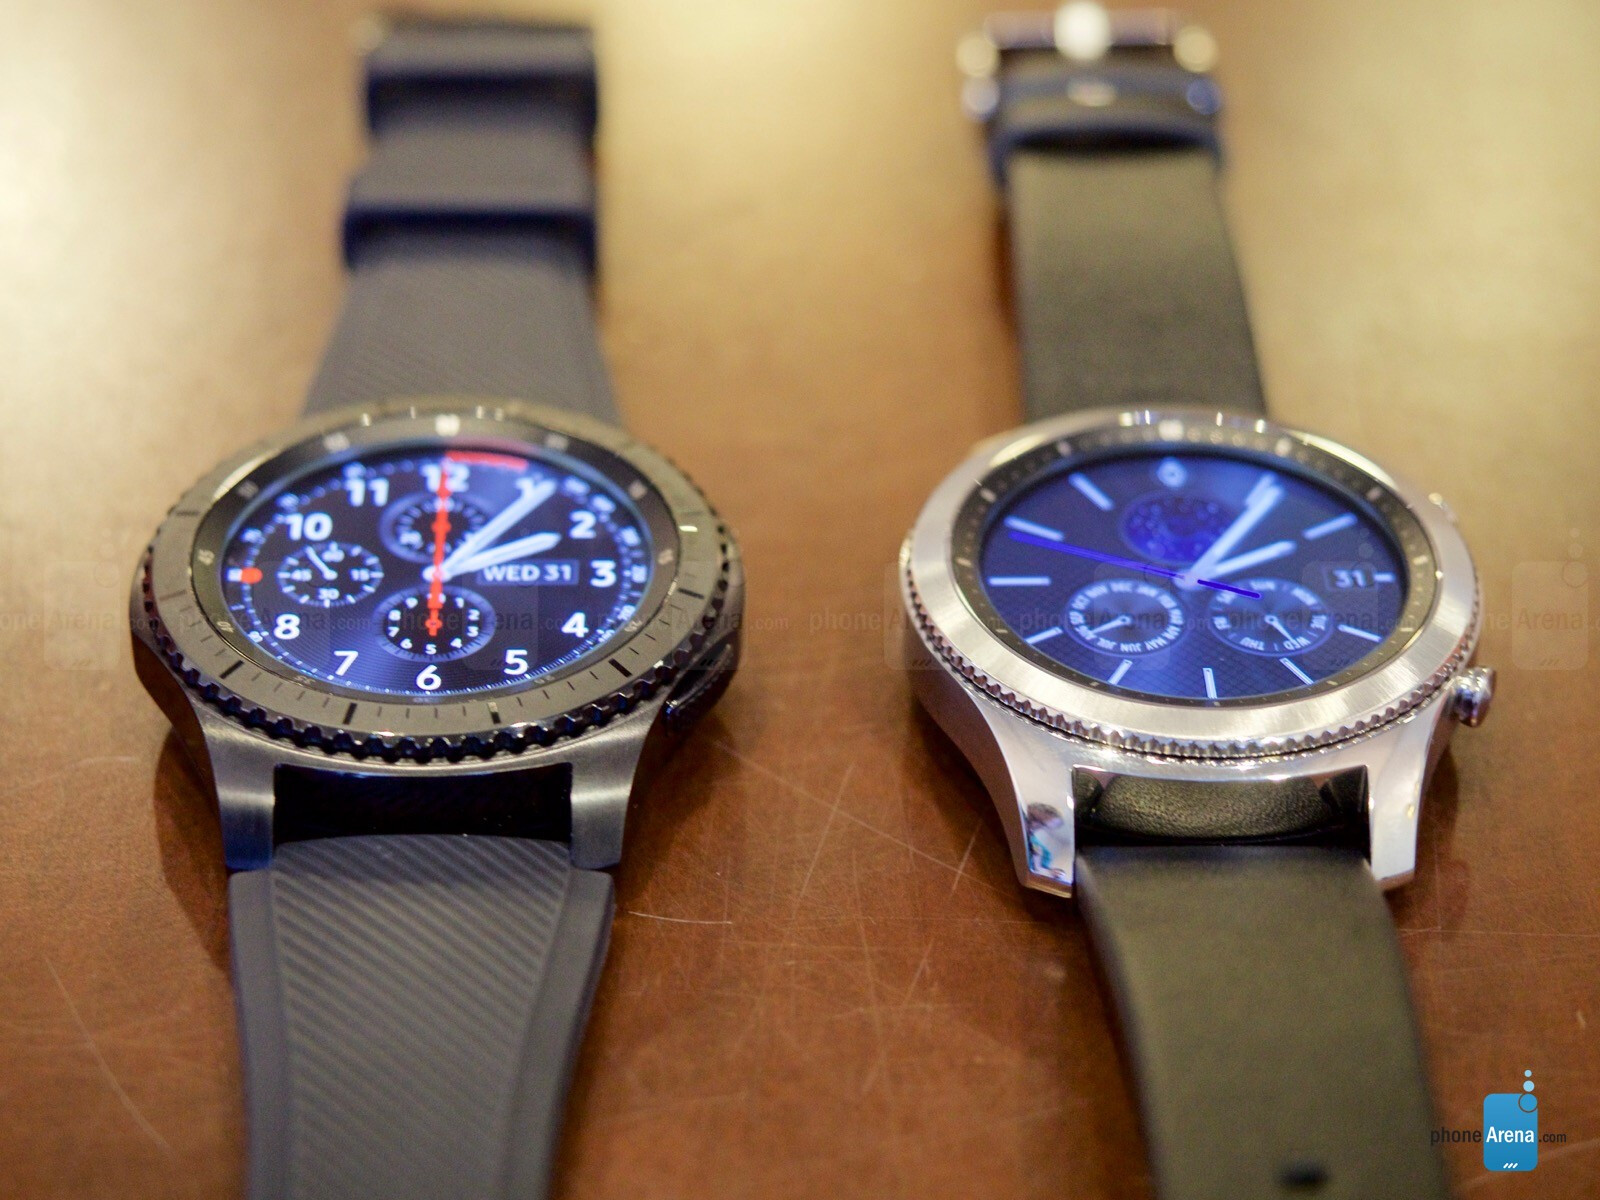 Samsung Gear S3 Hands On Classic And Frontier Versions Introduce Double Side Strap Only Bigger Screens Batteries